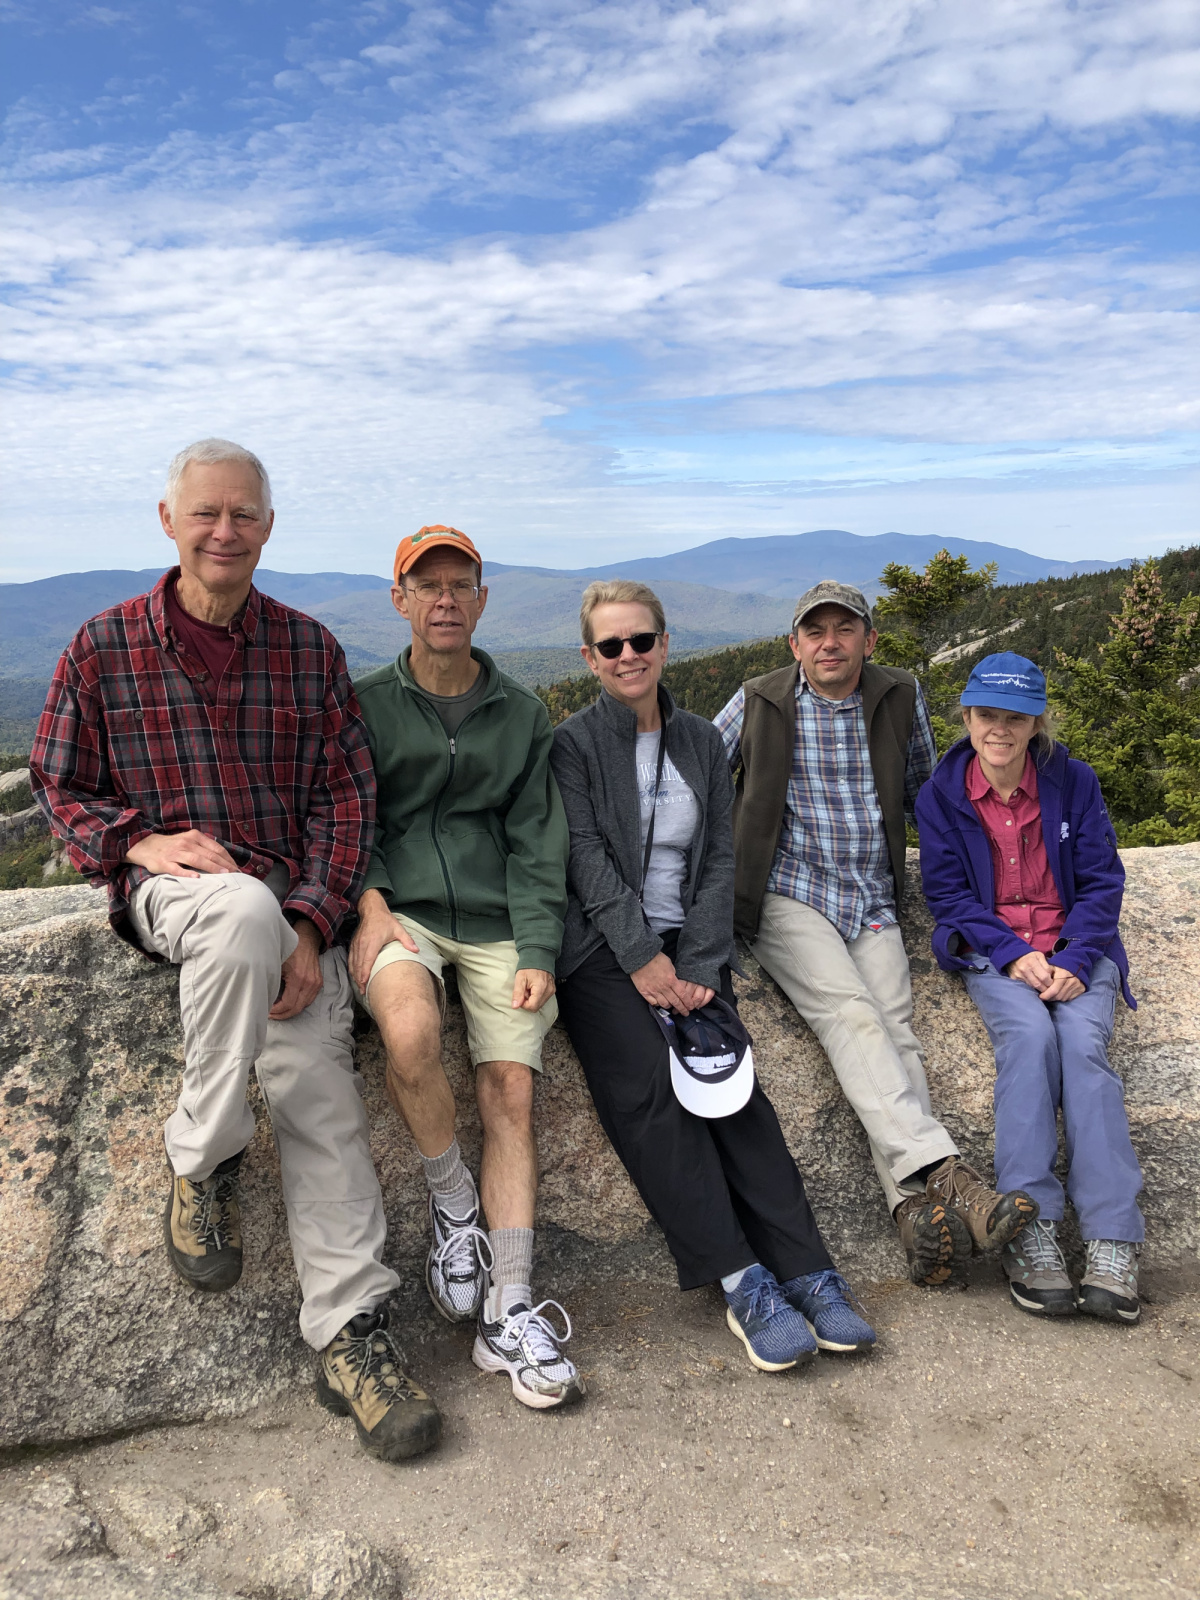 Bob, Bruce, me, Charlie and Ginger in the White Mountains of NH